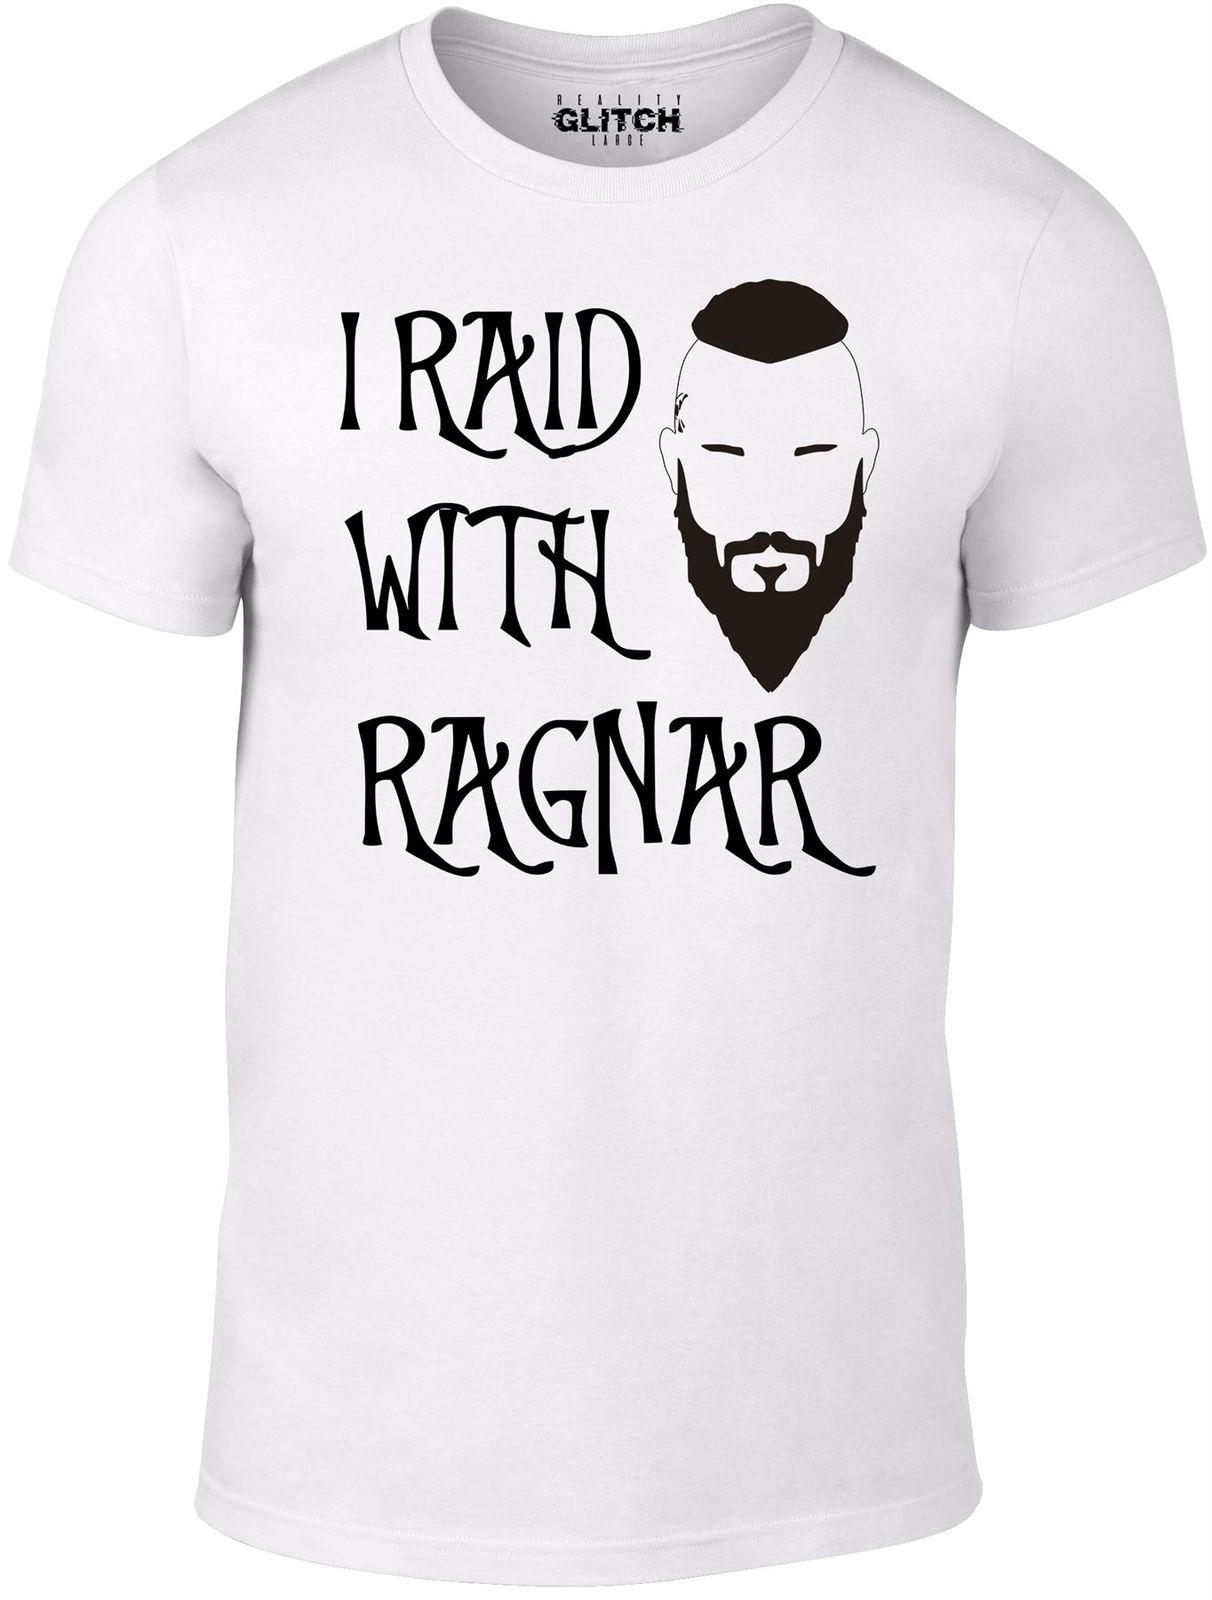 29ddd8d6 I Raid With Ragnar T Shirt Inspired By Vikings TV Series Norse Lothbrok  Legend Nerd T Shirts Design Shirt From Shop4ever, $11.01  DHgate.Com